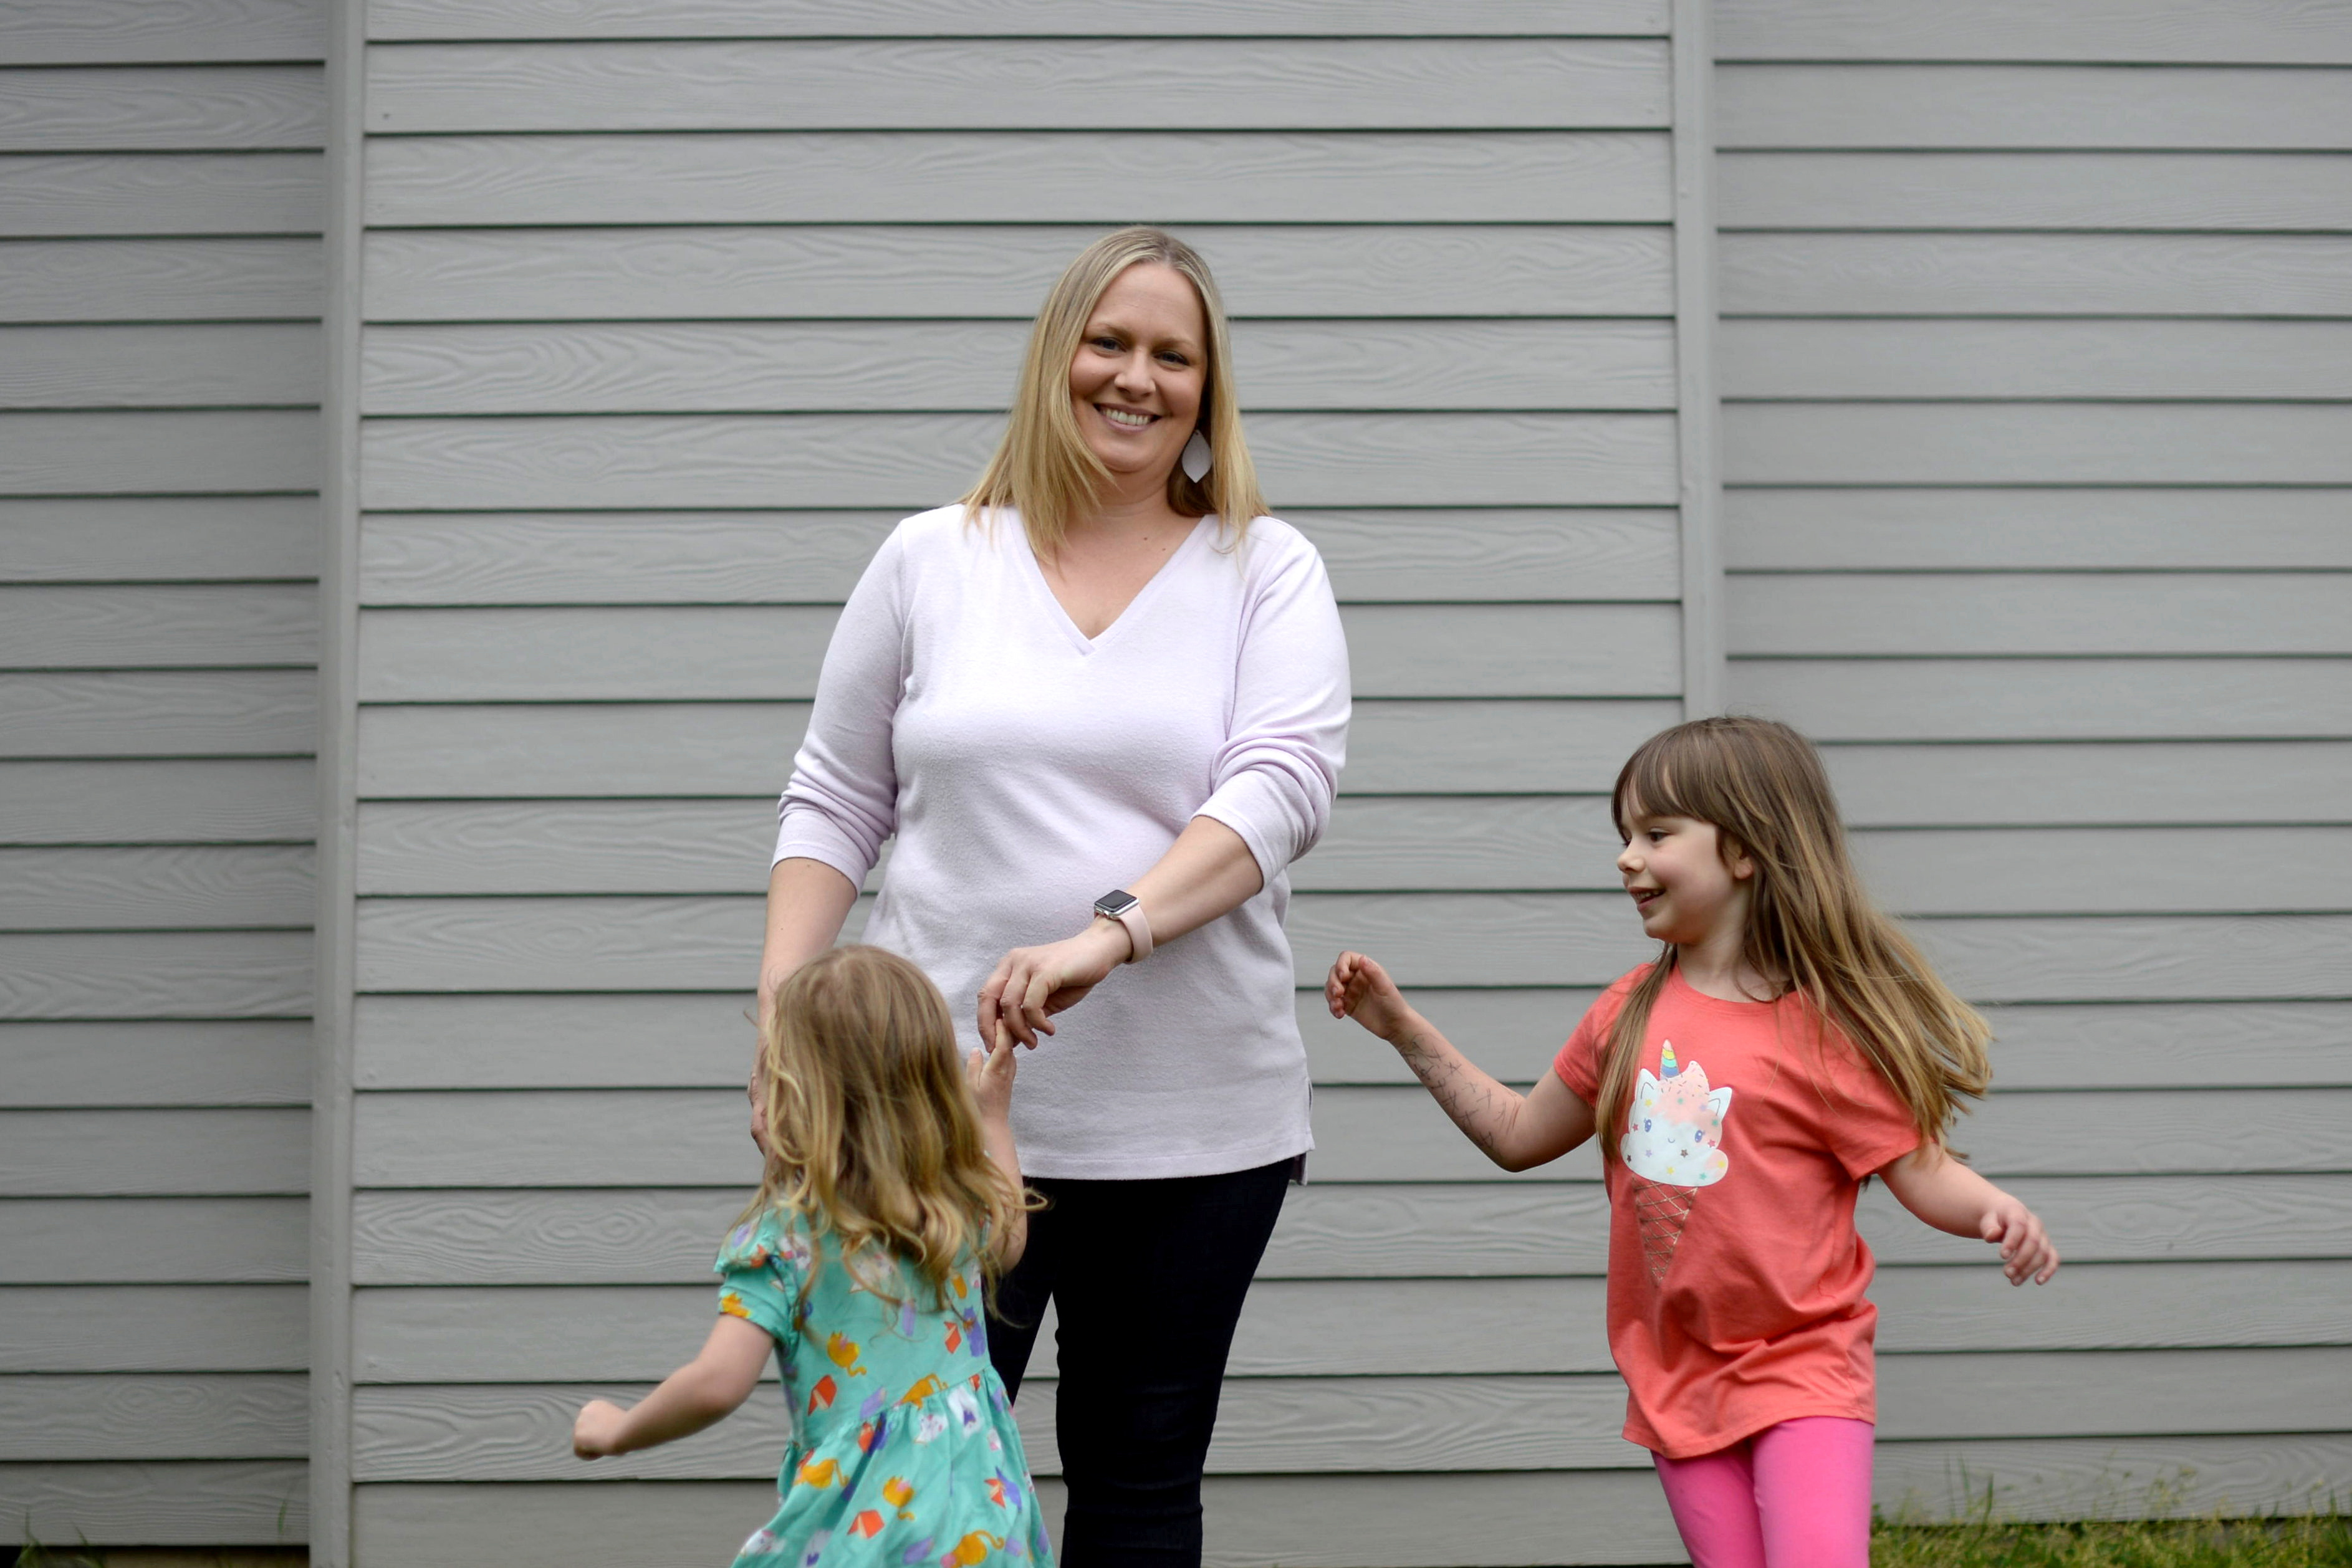 Mother of two, Wendy Niculescu, poses for a photo with her daughters Eleanor, left, and Olivia in Tualatin, Oregon, U.S., May 1, 2021. REUTERS/Amanda Lucier